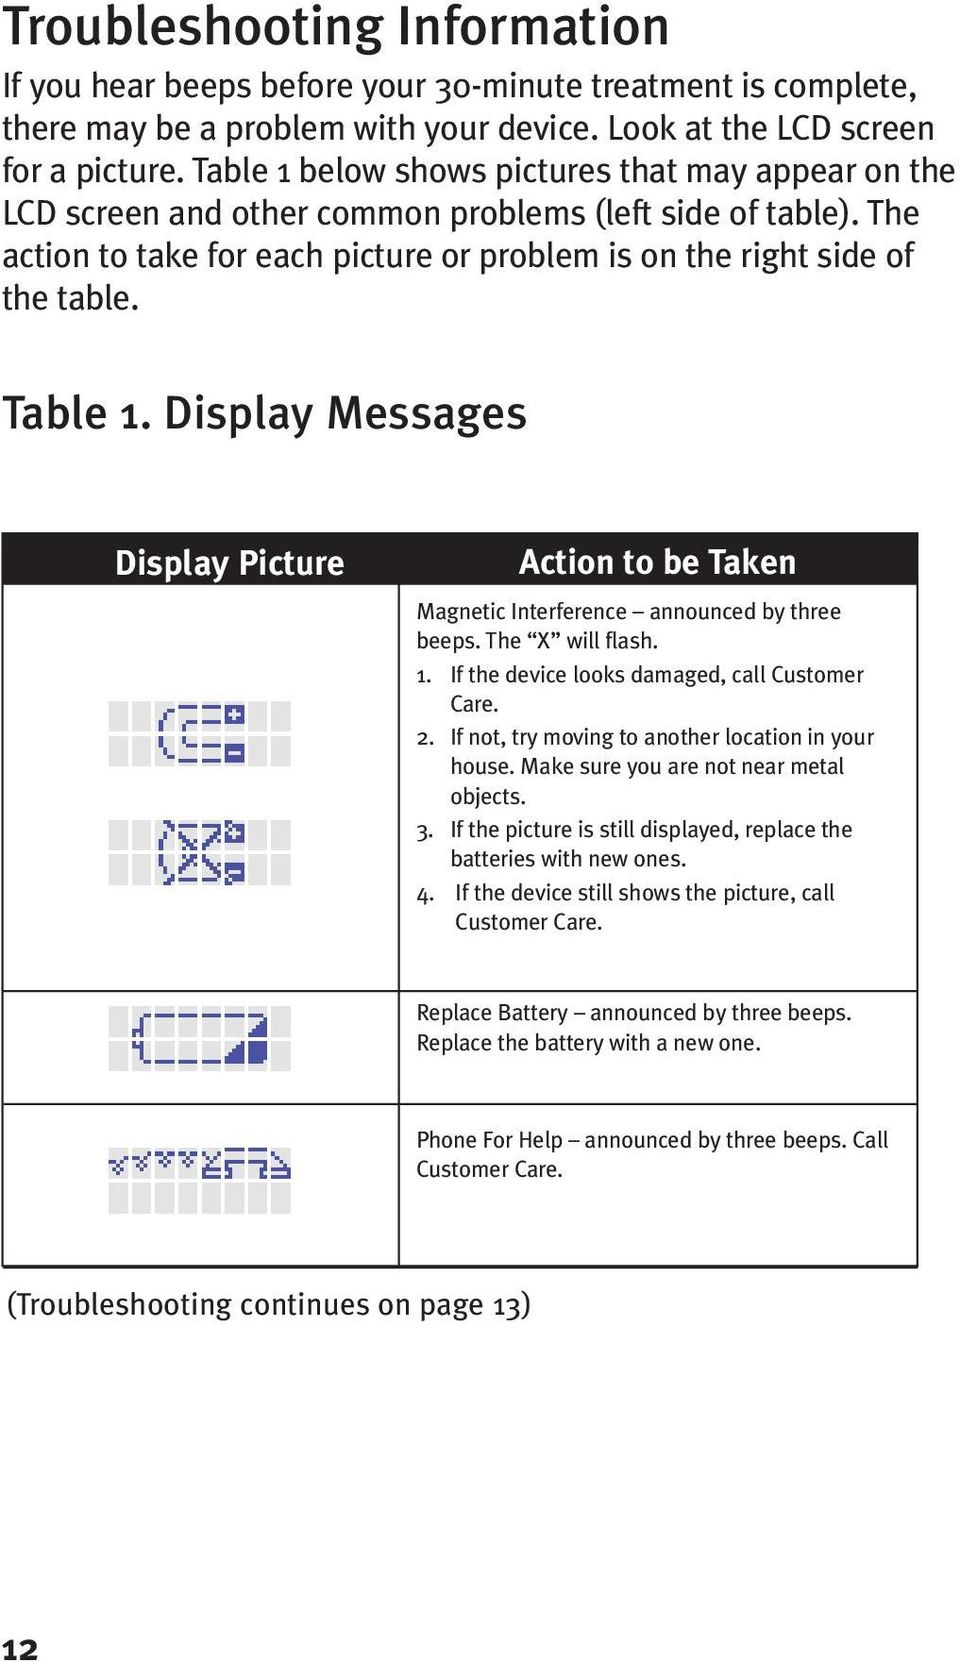 Table 1. Display Messages Display Picture Action to be Taken Magnetic Interference announced by three beeps. The X will flash. 1. If the device looks damaged, call Customer Care. 2.